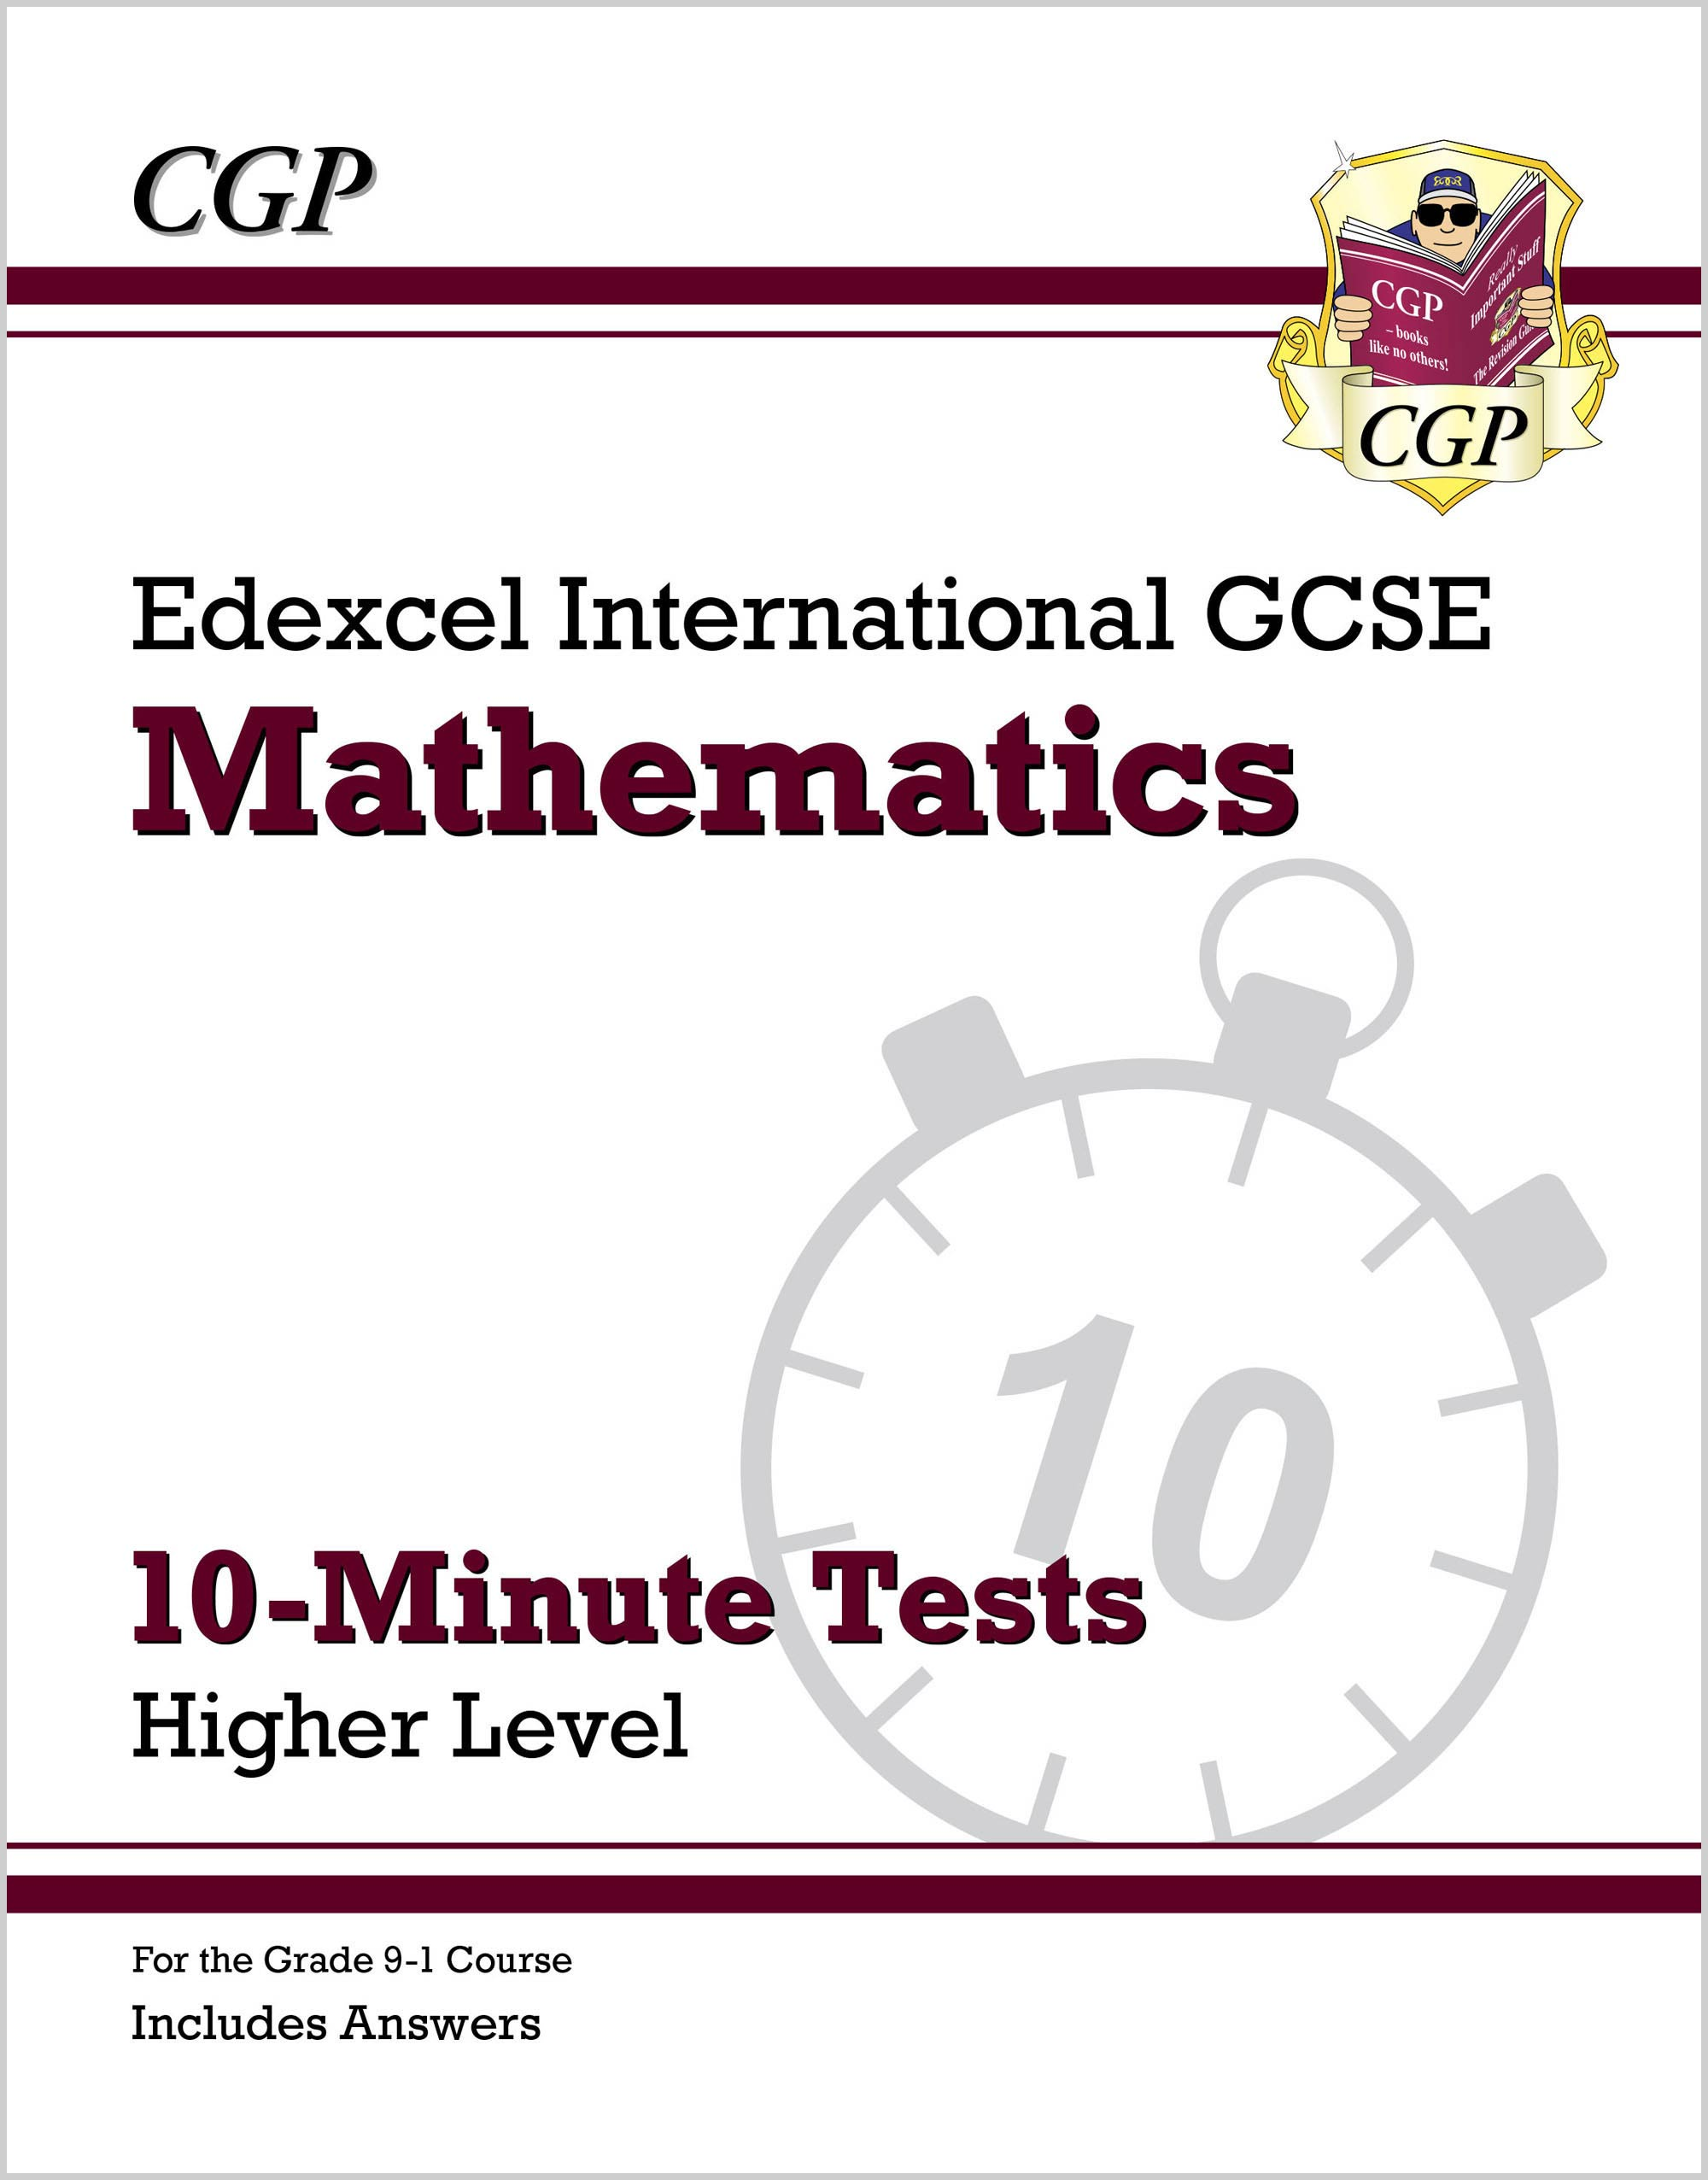 MEXPI41DK - New Grade 9-1 Edexcel International GCSE Maths 10-Minute Tests - Higher (includes Answer